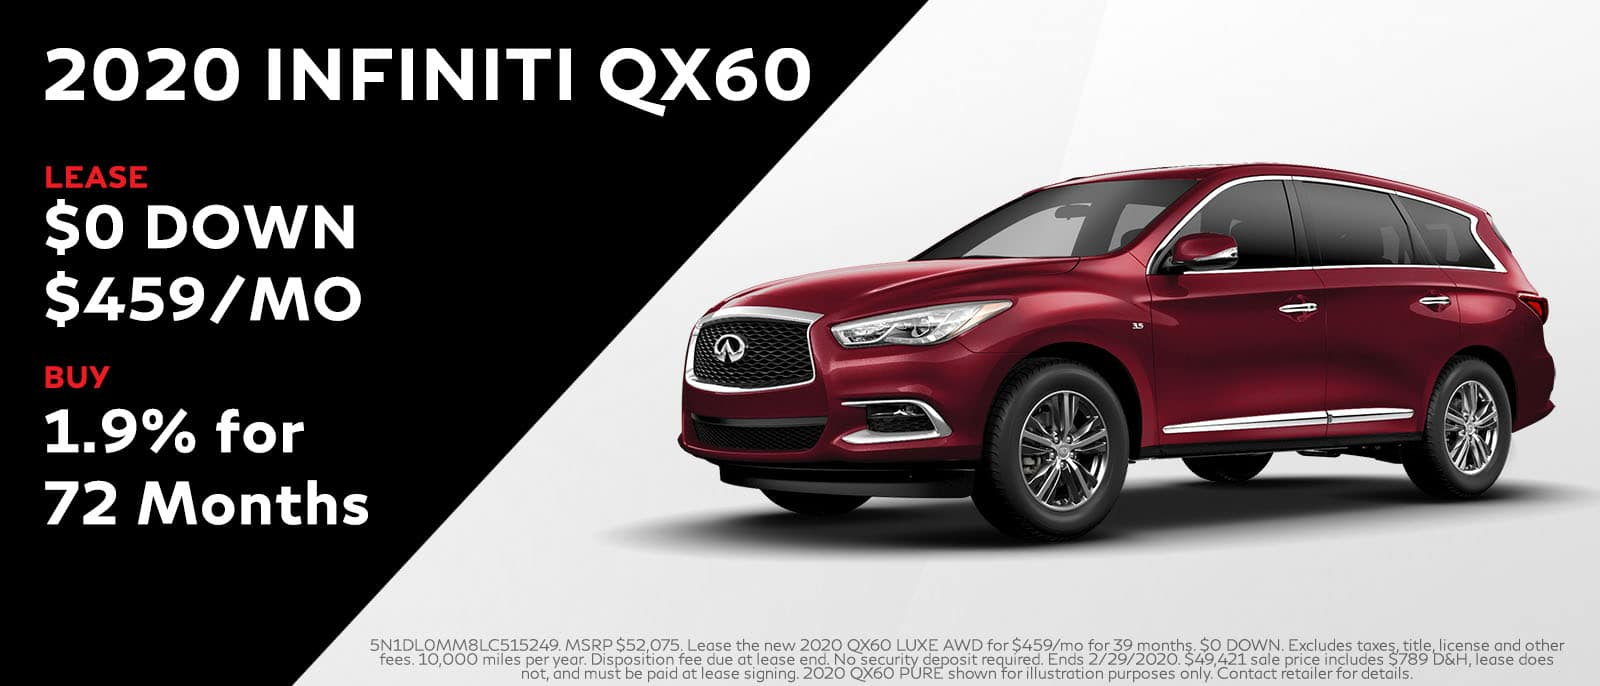 2020 INFINITI QX60 Lease or Buy Offer